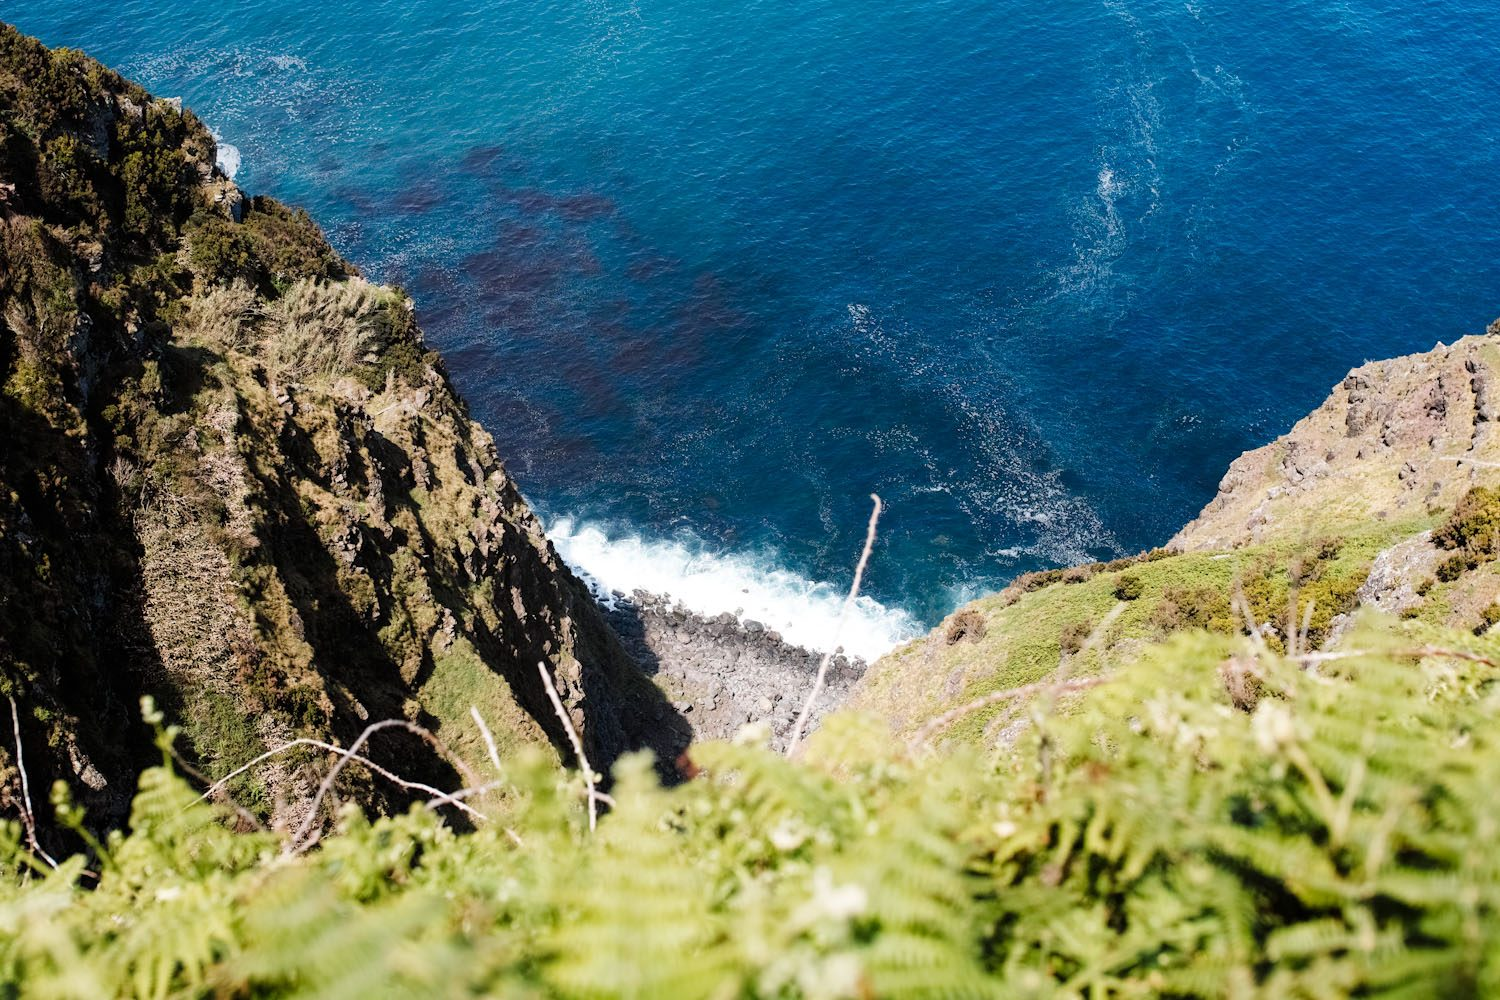 panorama_landscapes_azores_thevoyageur-45